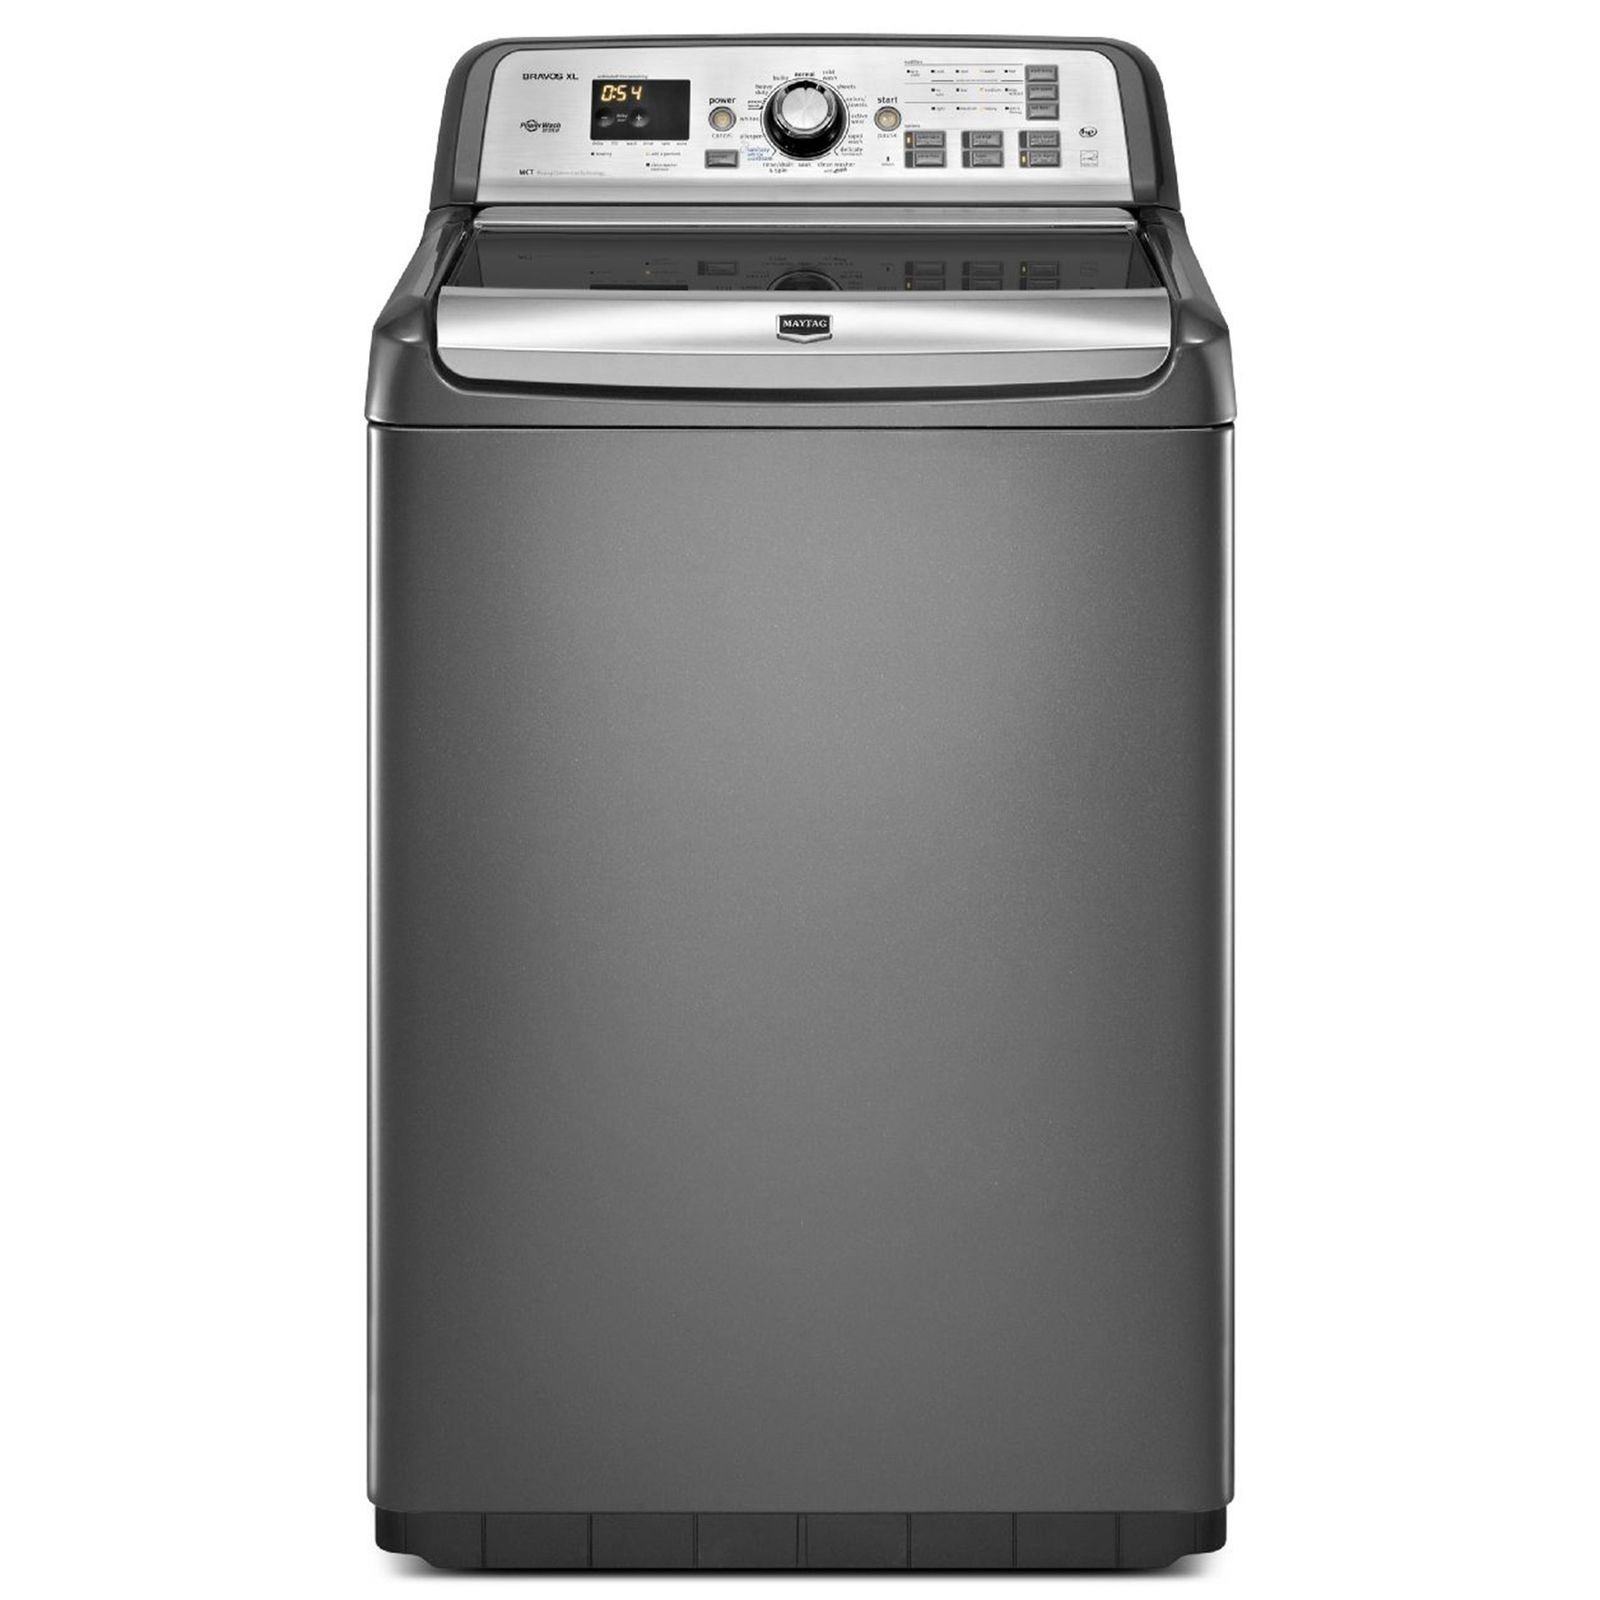 Maytag 4 8 cu ft bravos xl he top load washer with steam - Maytag whirlpool ...